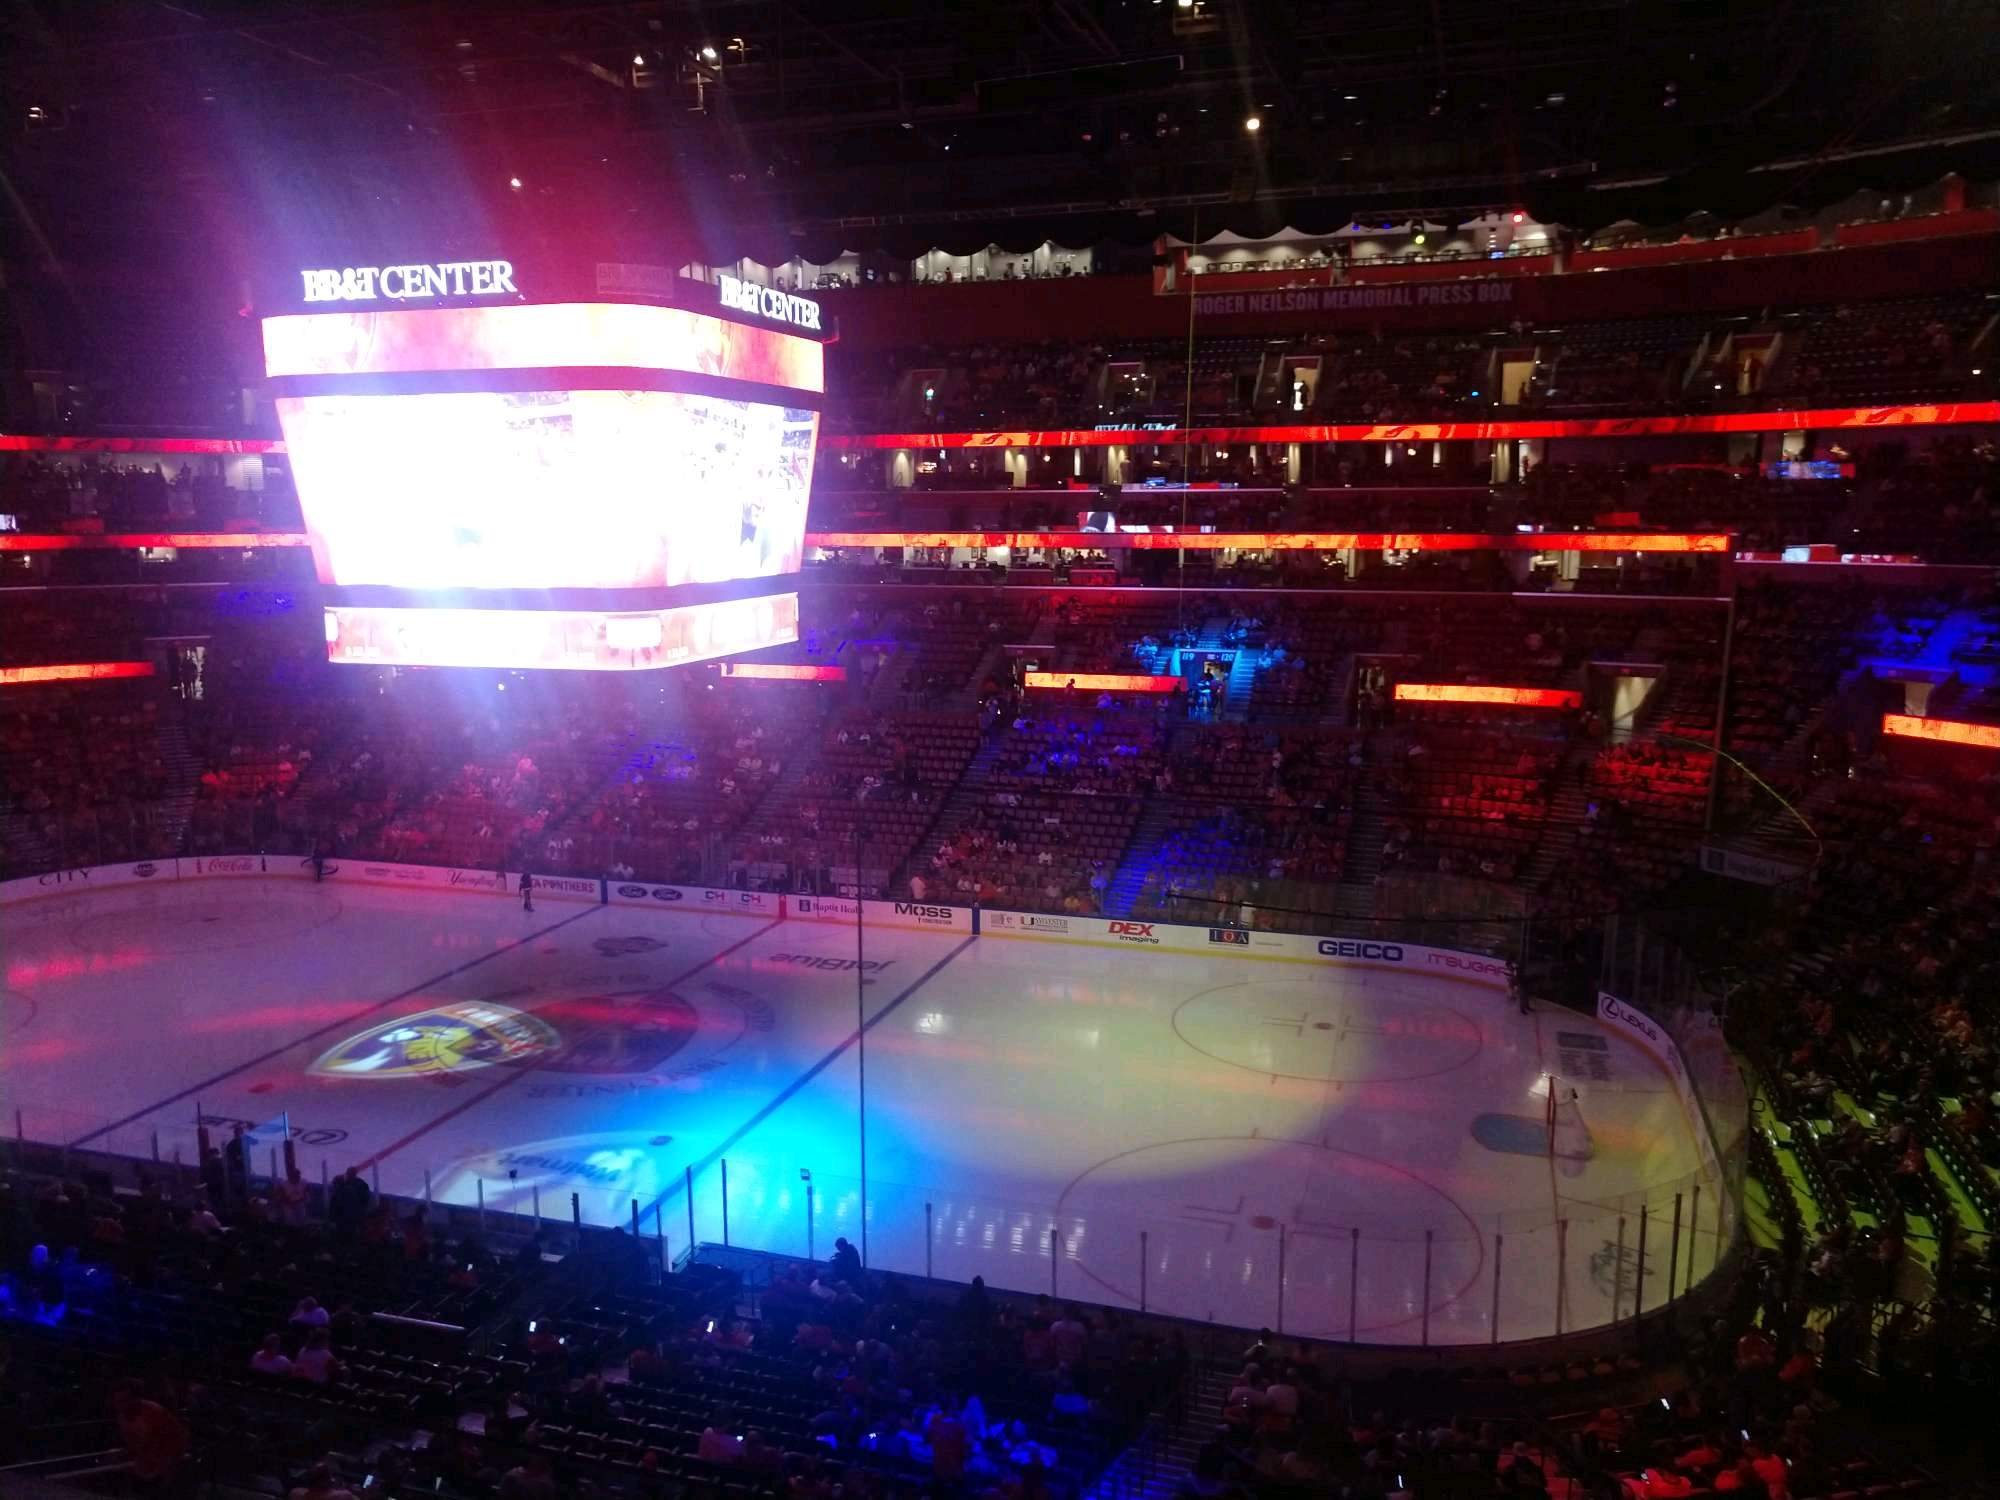 BB&T Center Section CL34 Row 2 Seat 1